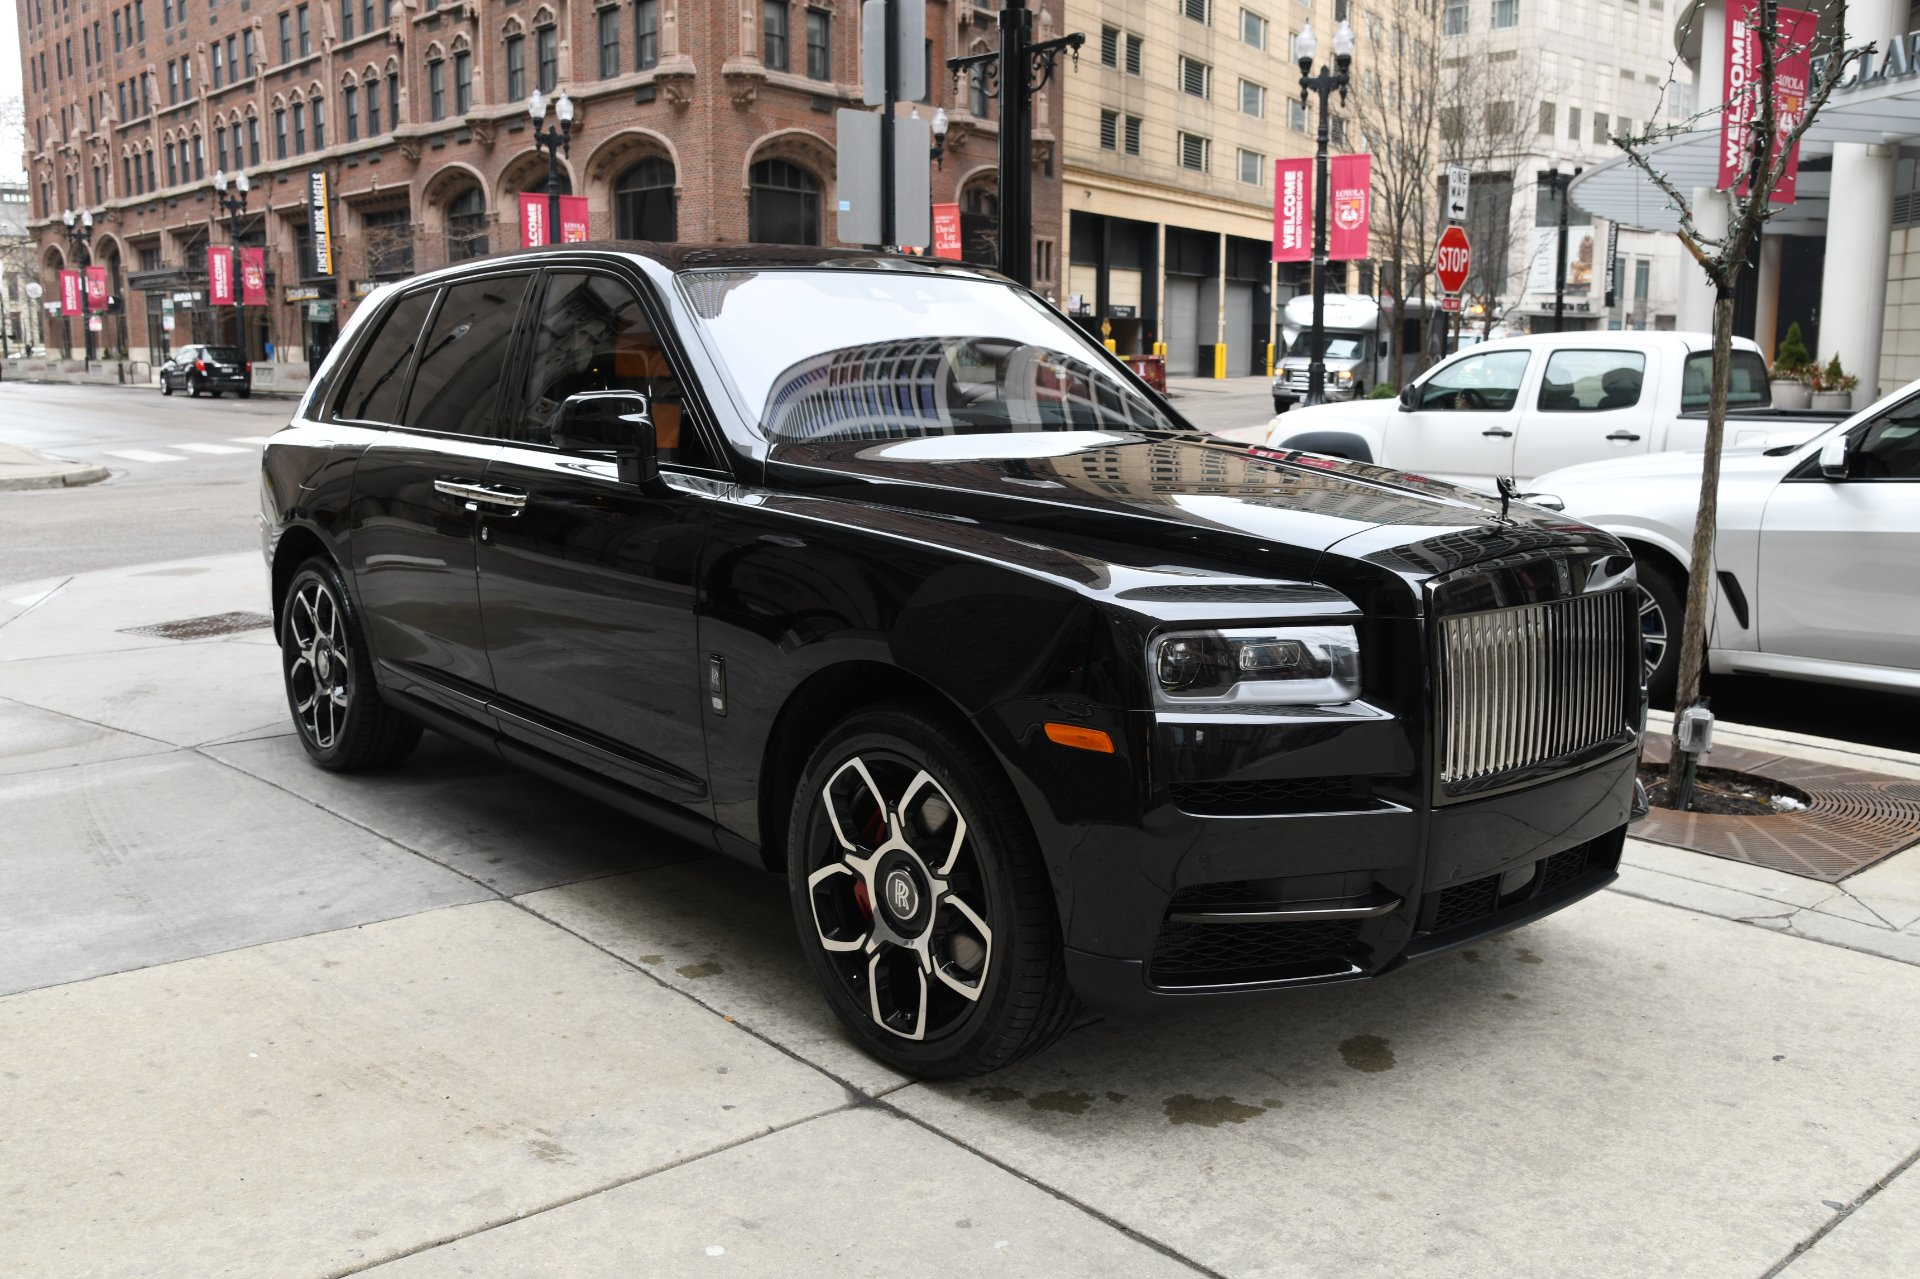 For Sale 2020 Rolls Royce Cullinan Black Badge Chicago Exotic Car Dealer United States For Sale On Luxurypulse